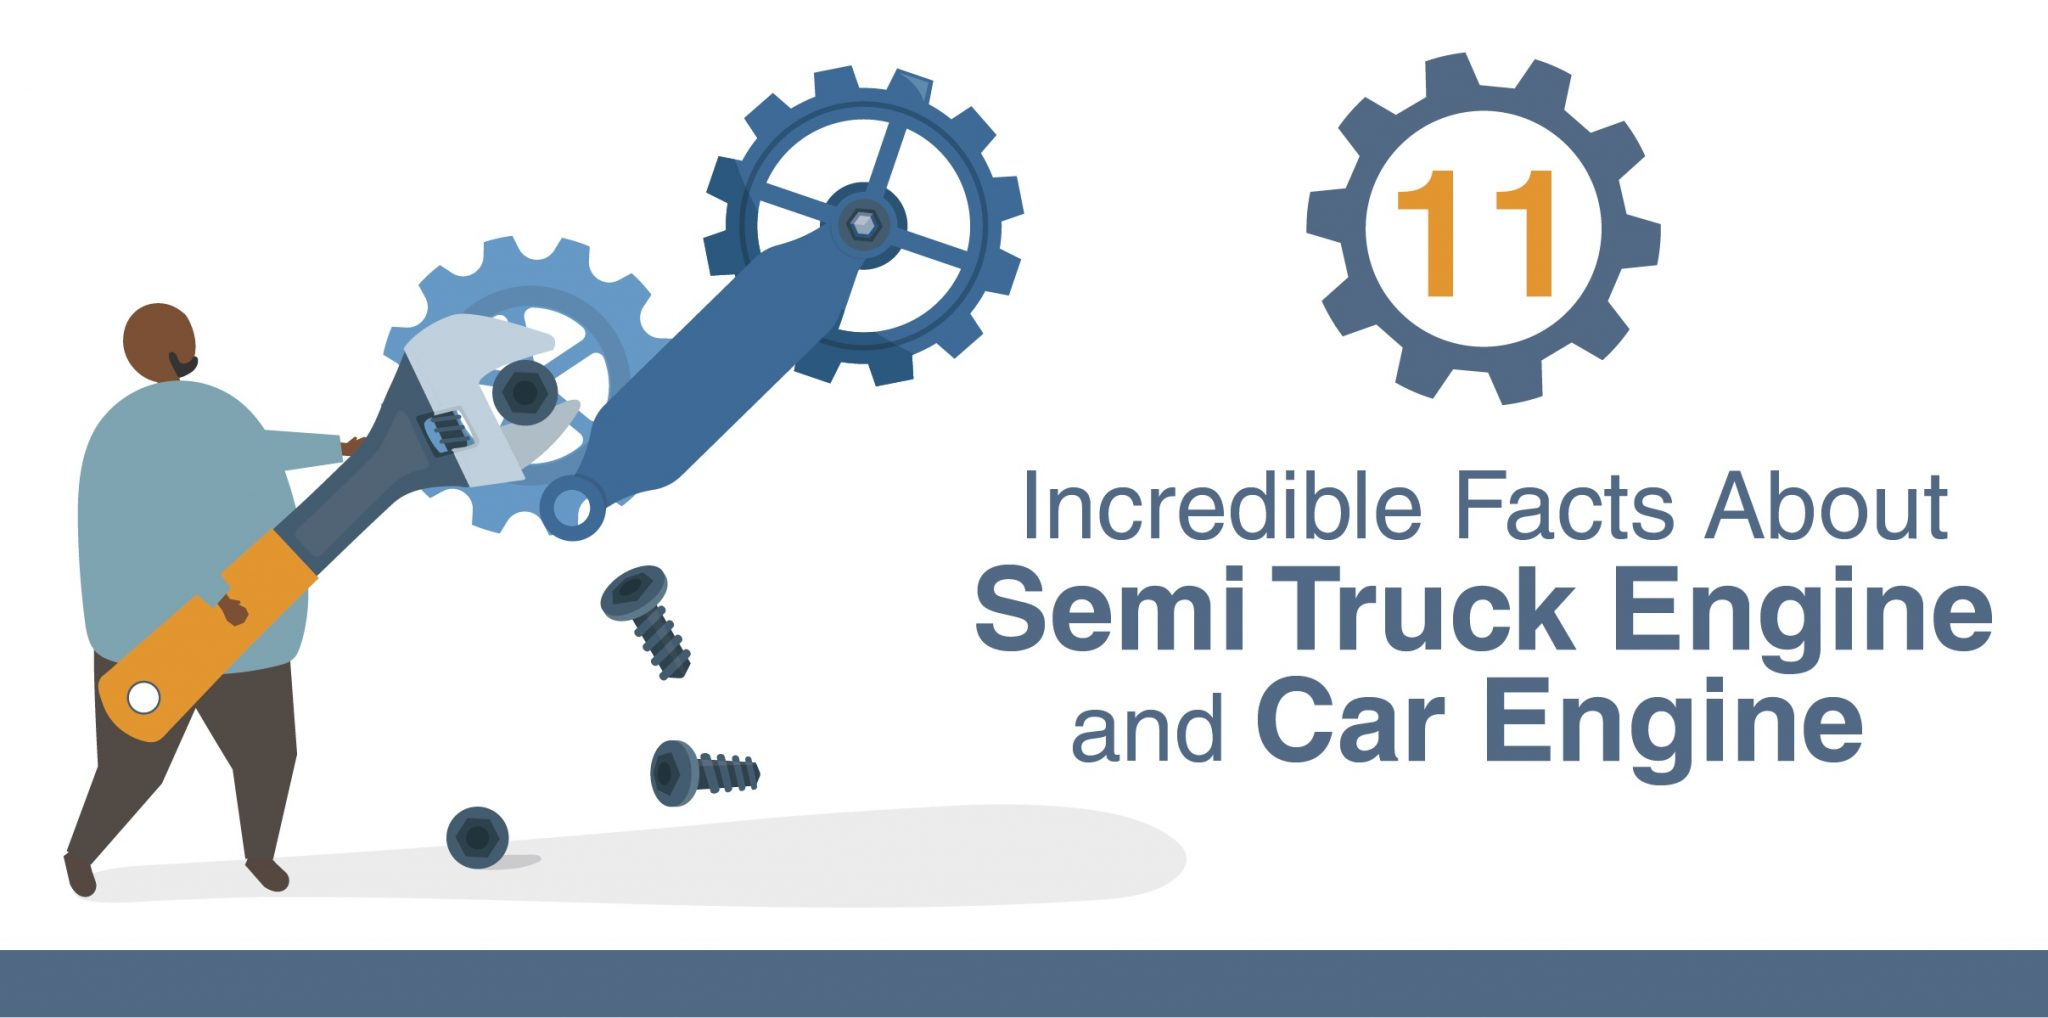 INFOGRAPHIC: 11 Incredible Facts About Semi Truck Engine and Car Engine